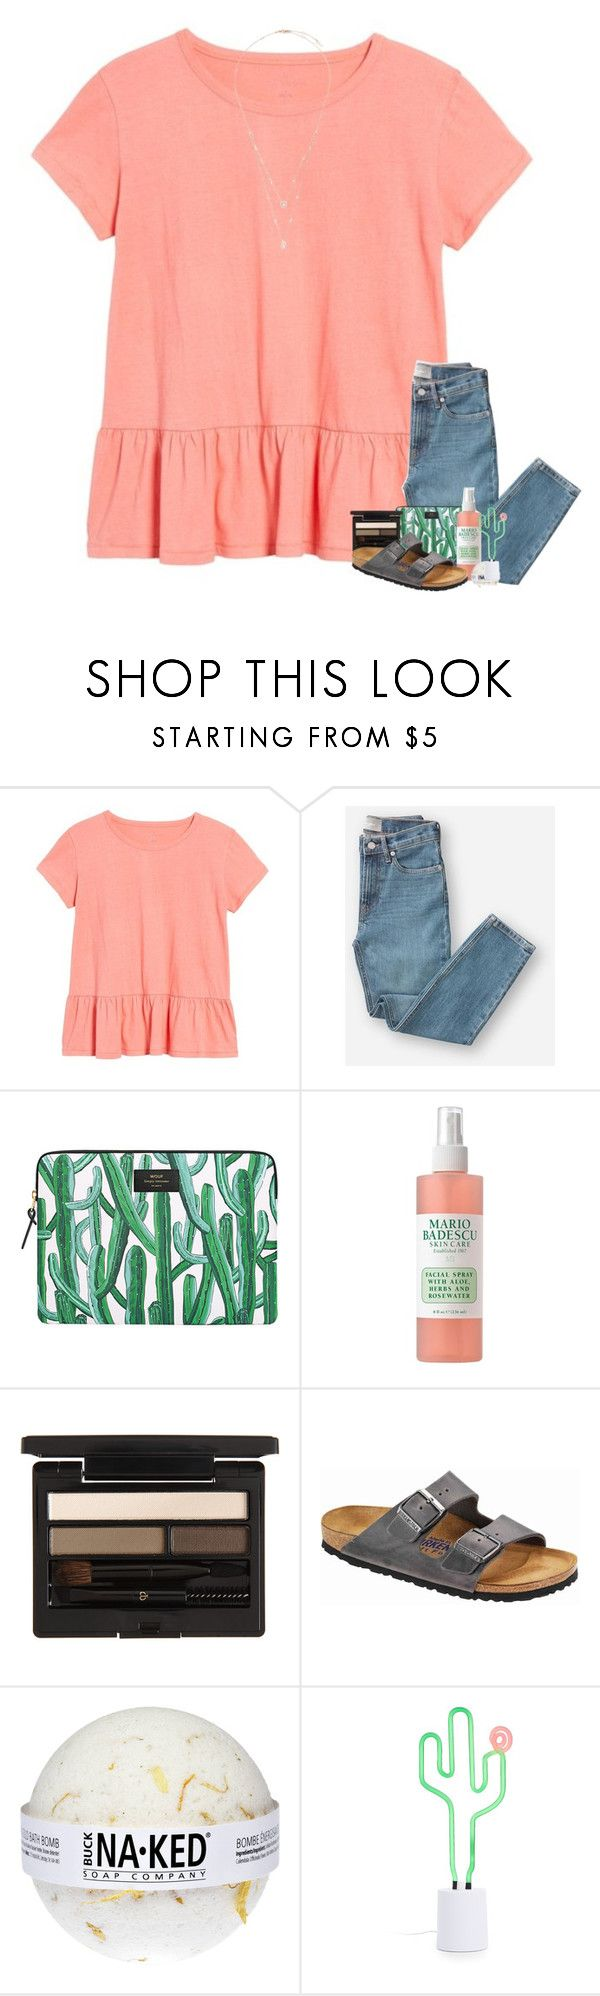 """xoxoxo"" by classyandsassyabby ❤ liked on Polyvore featuring Caslon, Everlane, Wouf, Mario Badescu Skin Care, Clé de Peau Beauté, Birkenstock, Sunnylife and Messika"